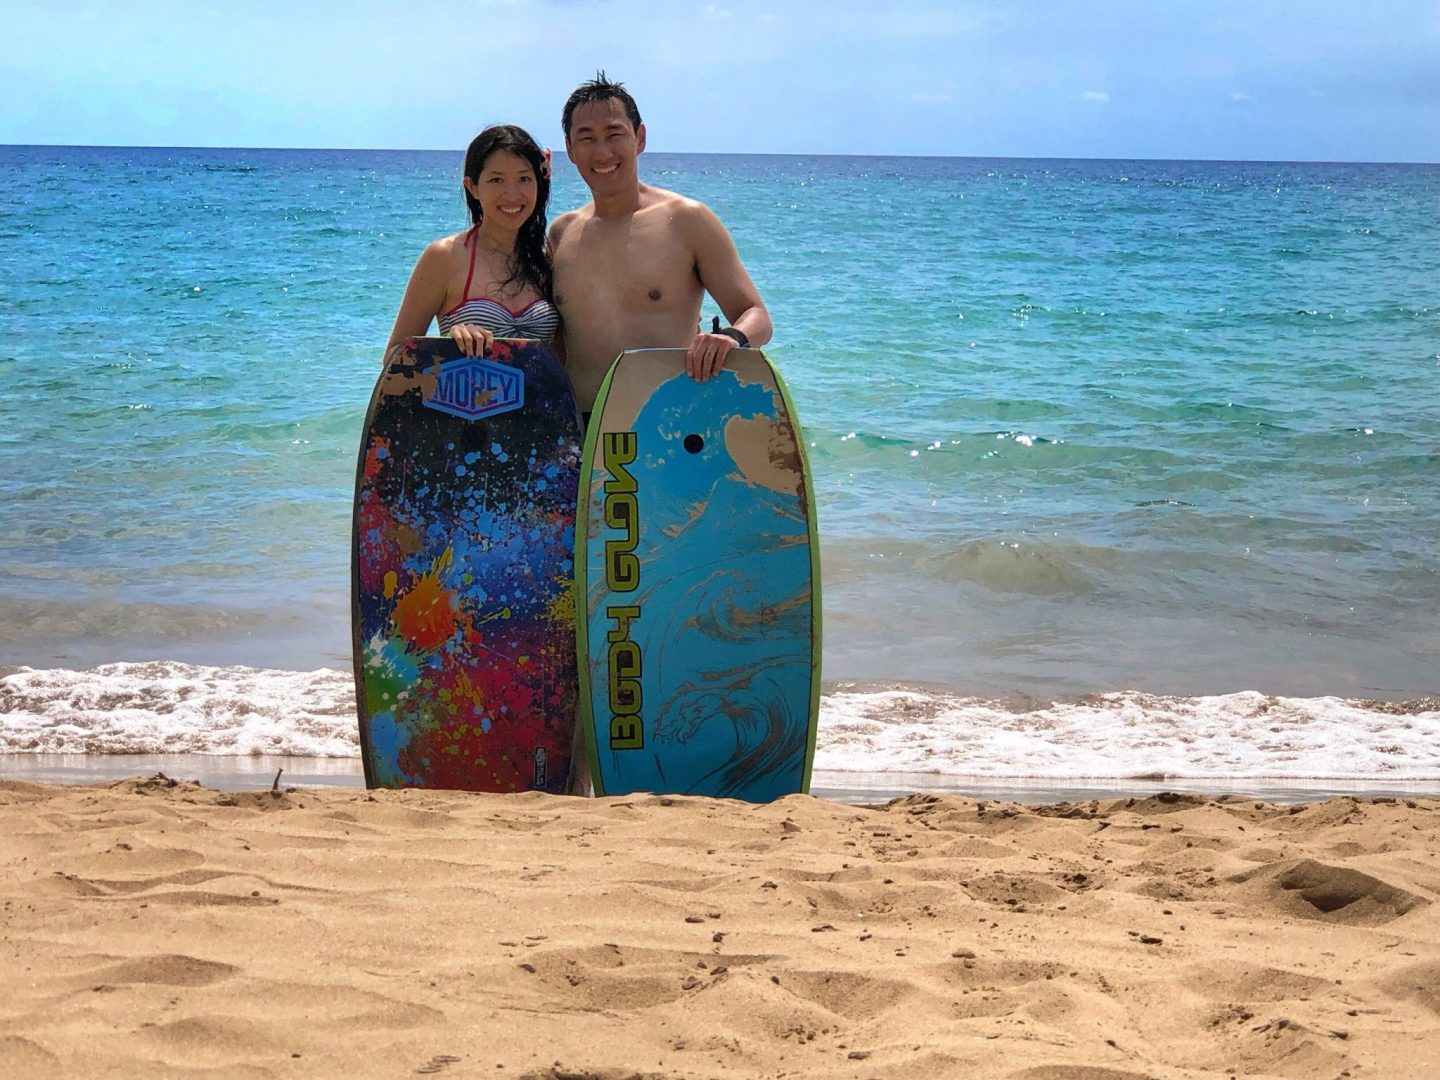 Bodyboarding in Hawaii